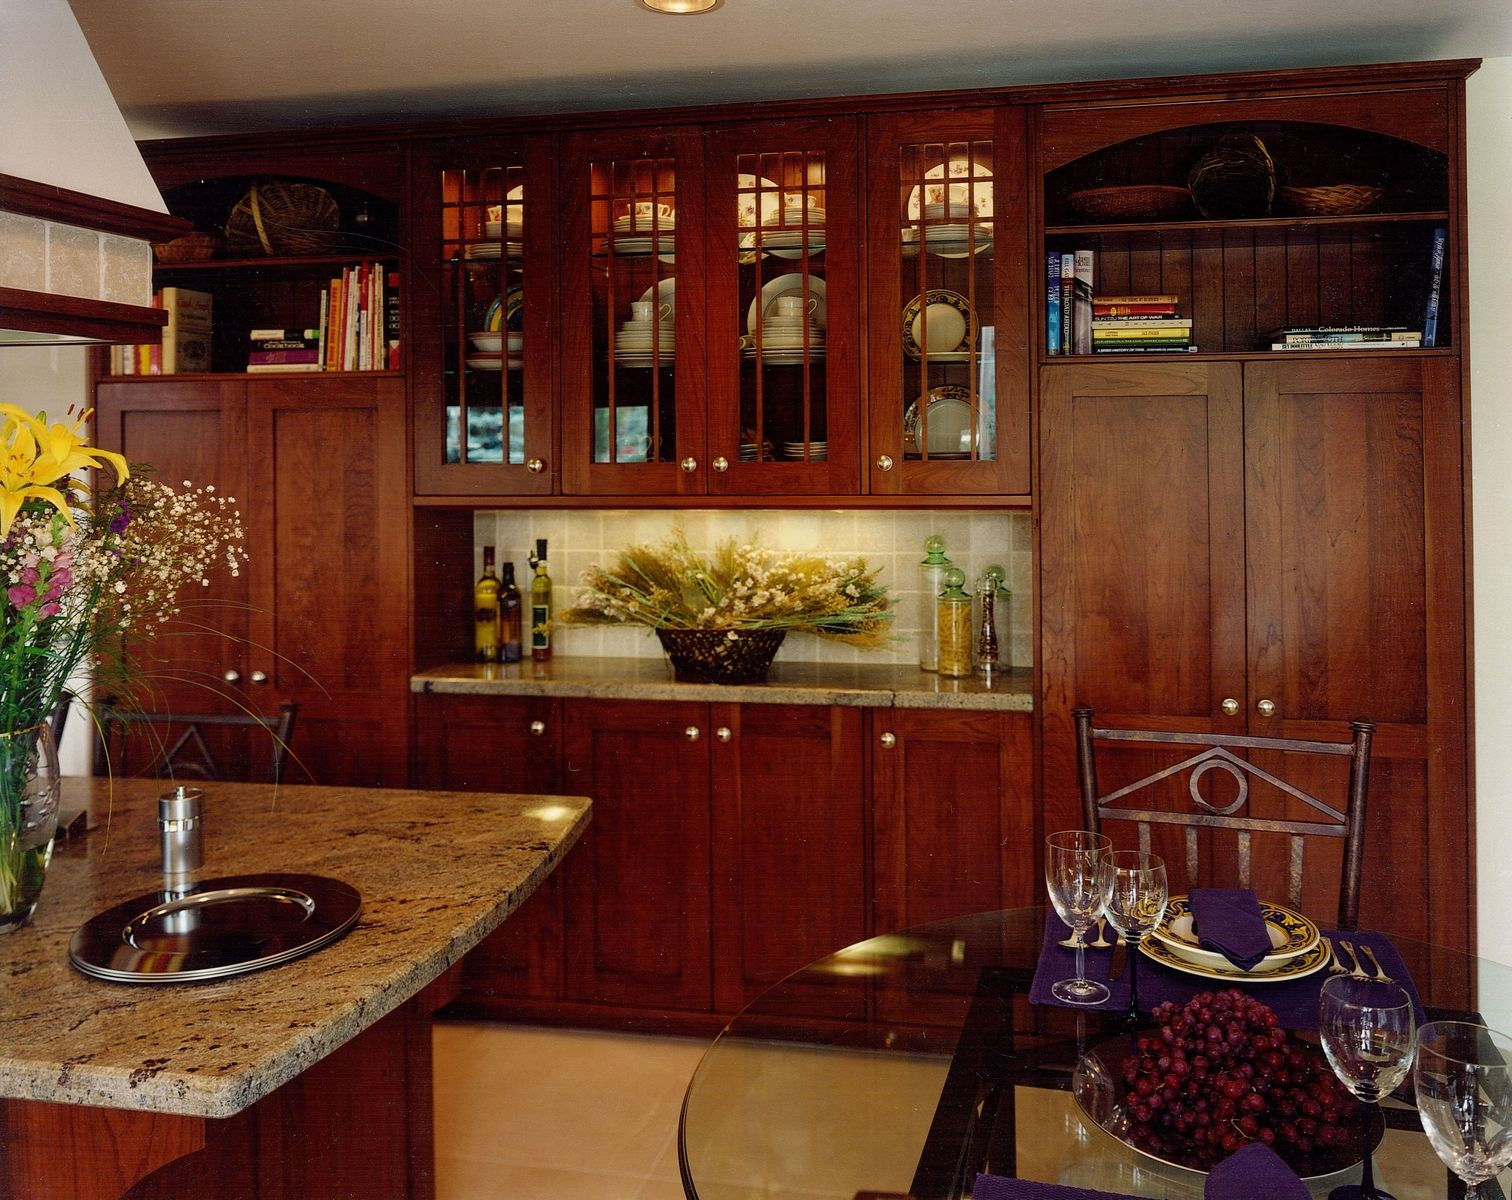 Interior Craft Made Cabinetry hand made arts crafts kitchen remodel of cherry wood by cabinets custom wood